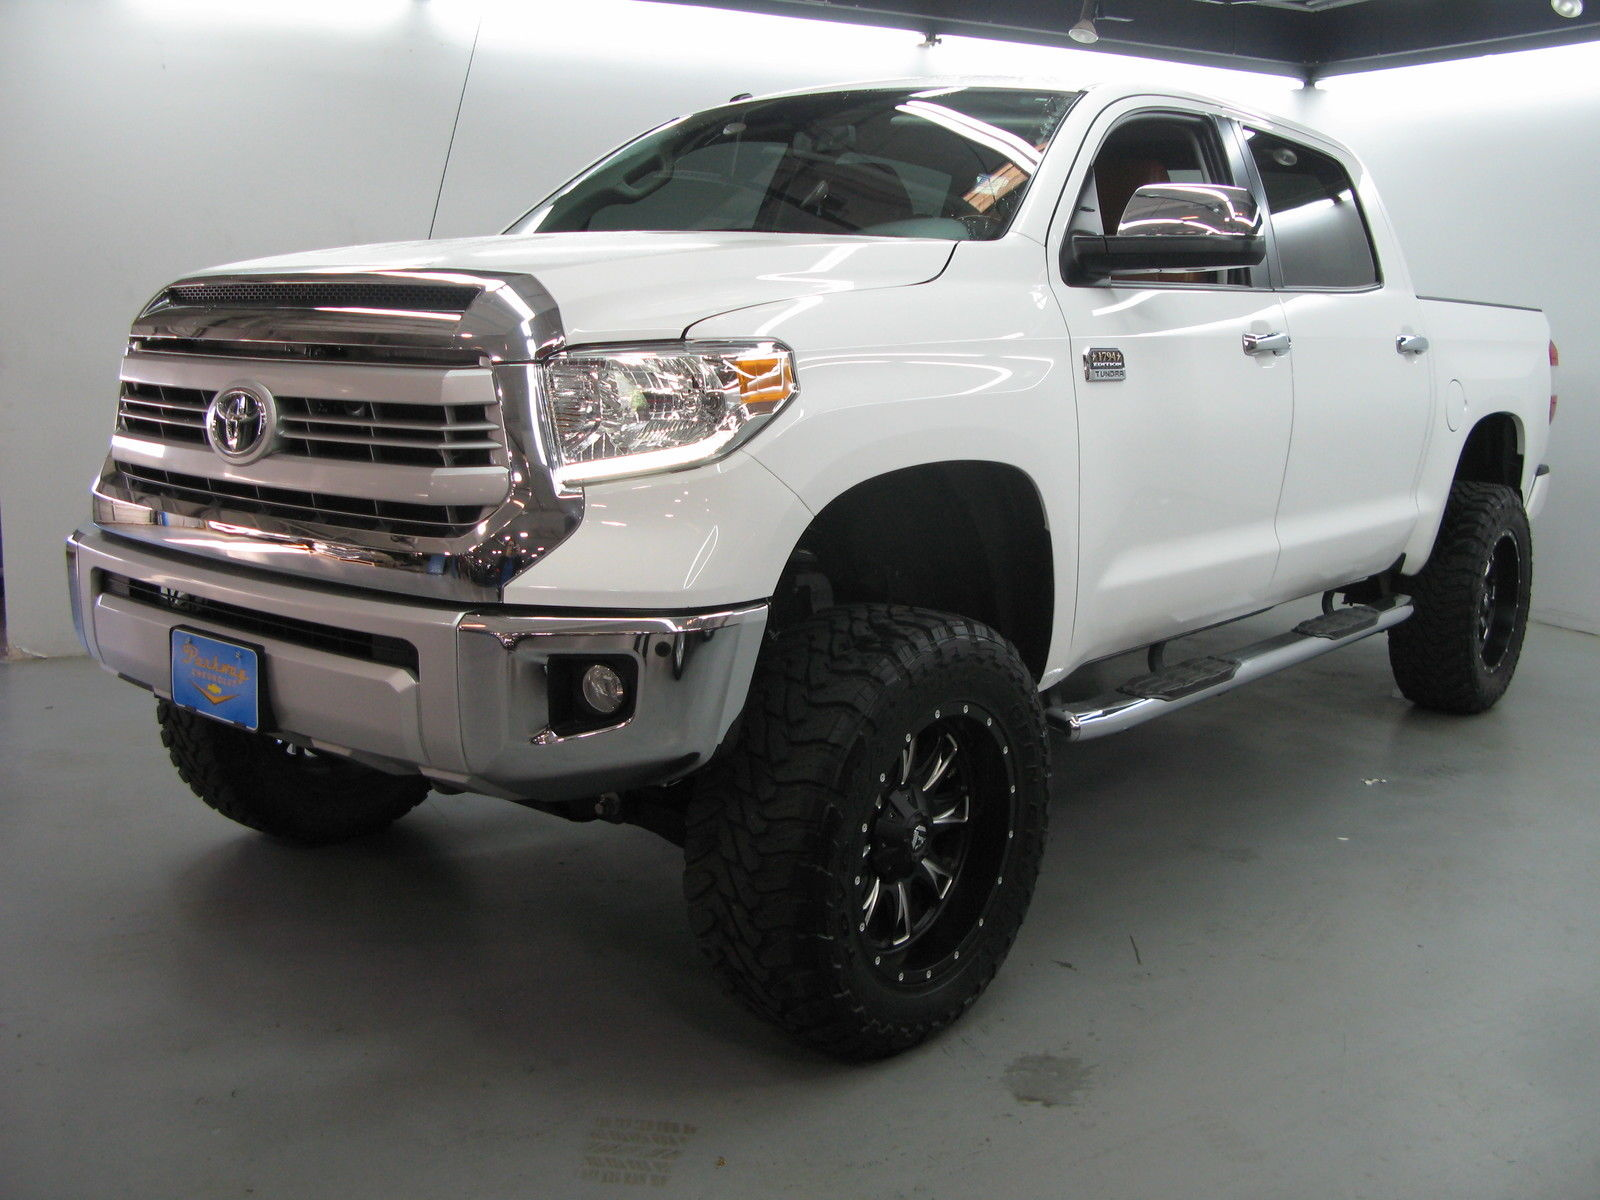 2015 toyota tundra 1794 edition crew cab 4wd pickup 4 door 5 7l lifted for sale. Black Bedroom Furniture Sets. Home Design Ideas